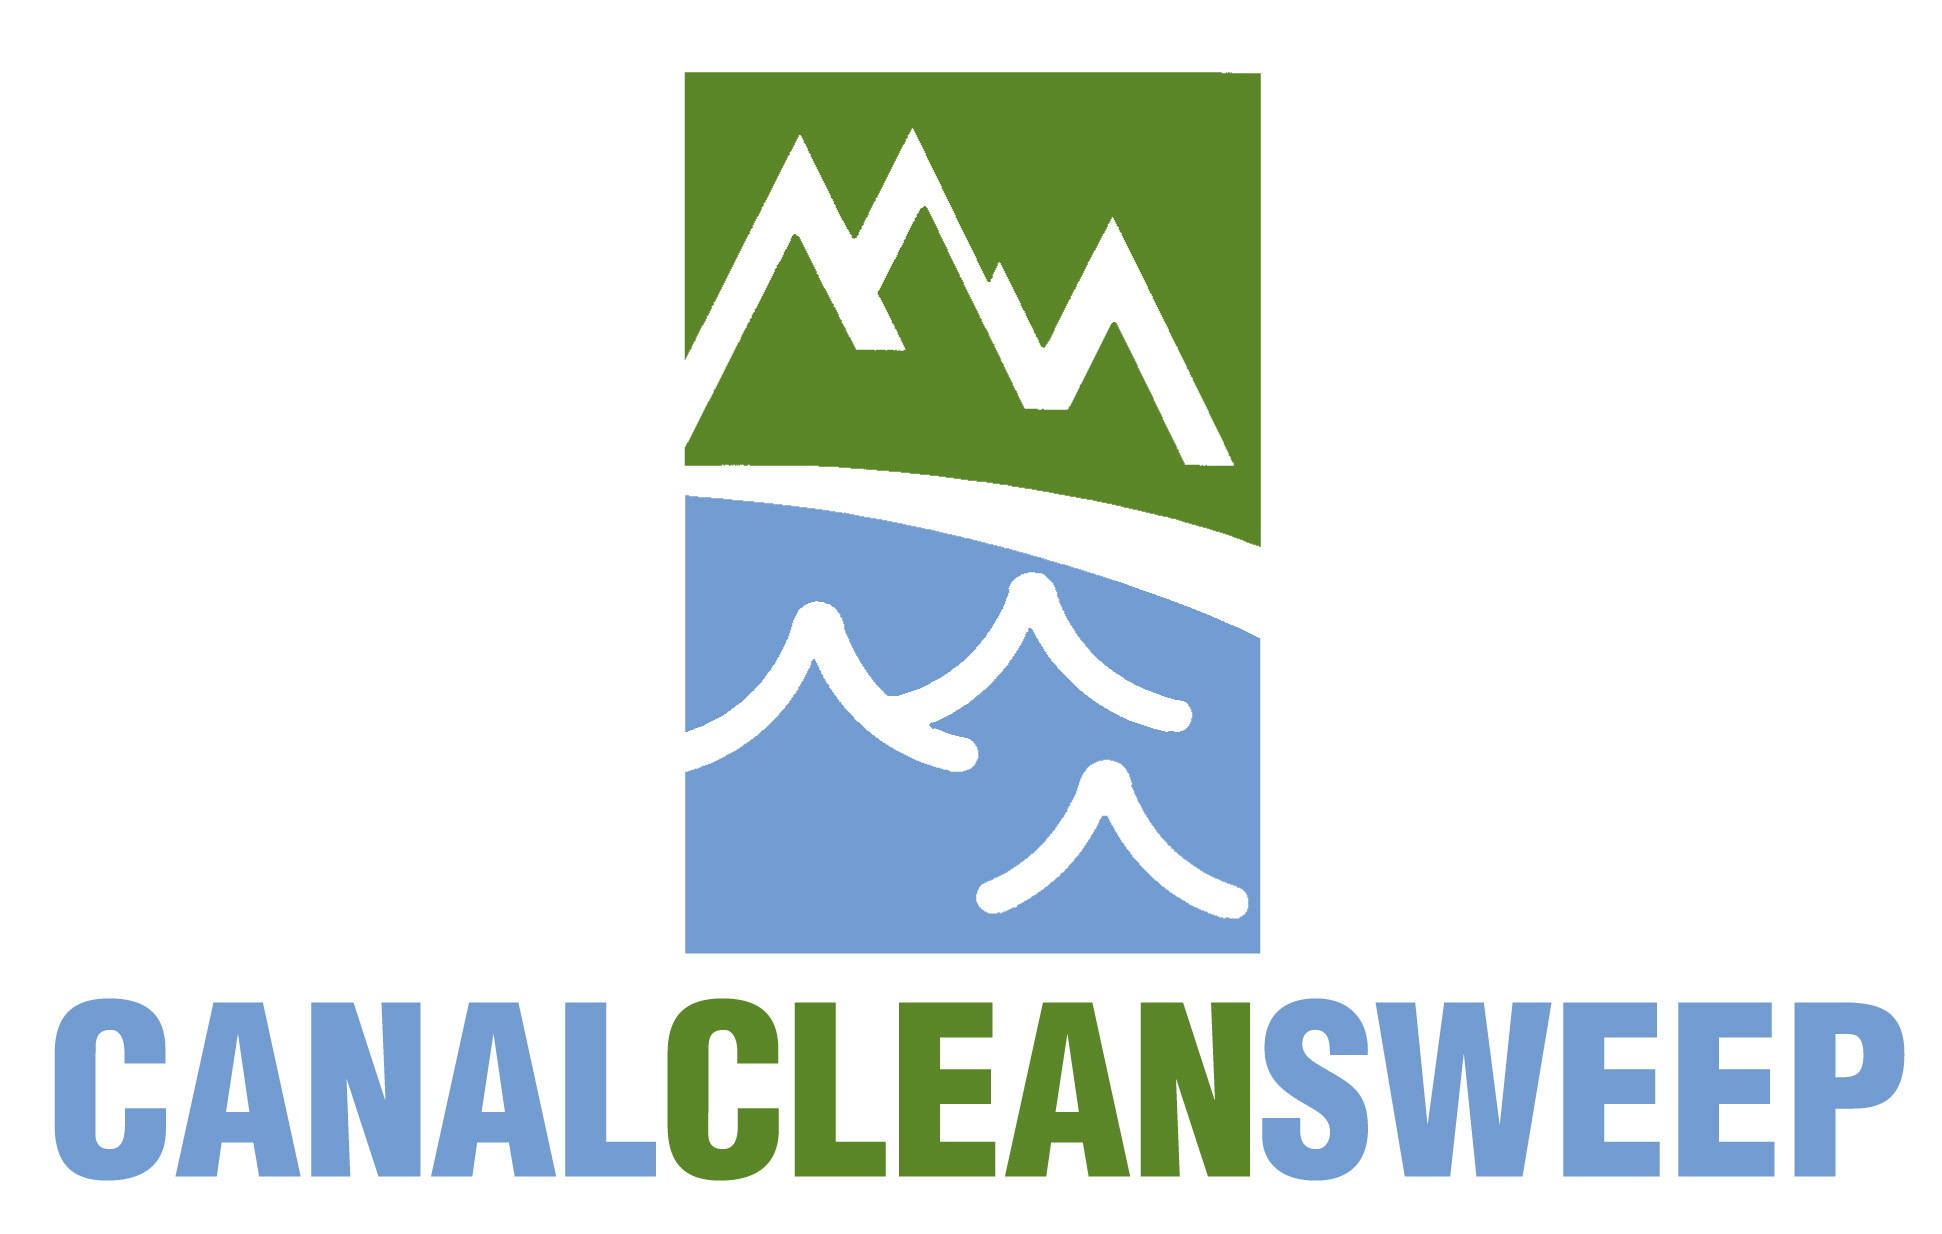 CanalCleanSweep.jpg